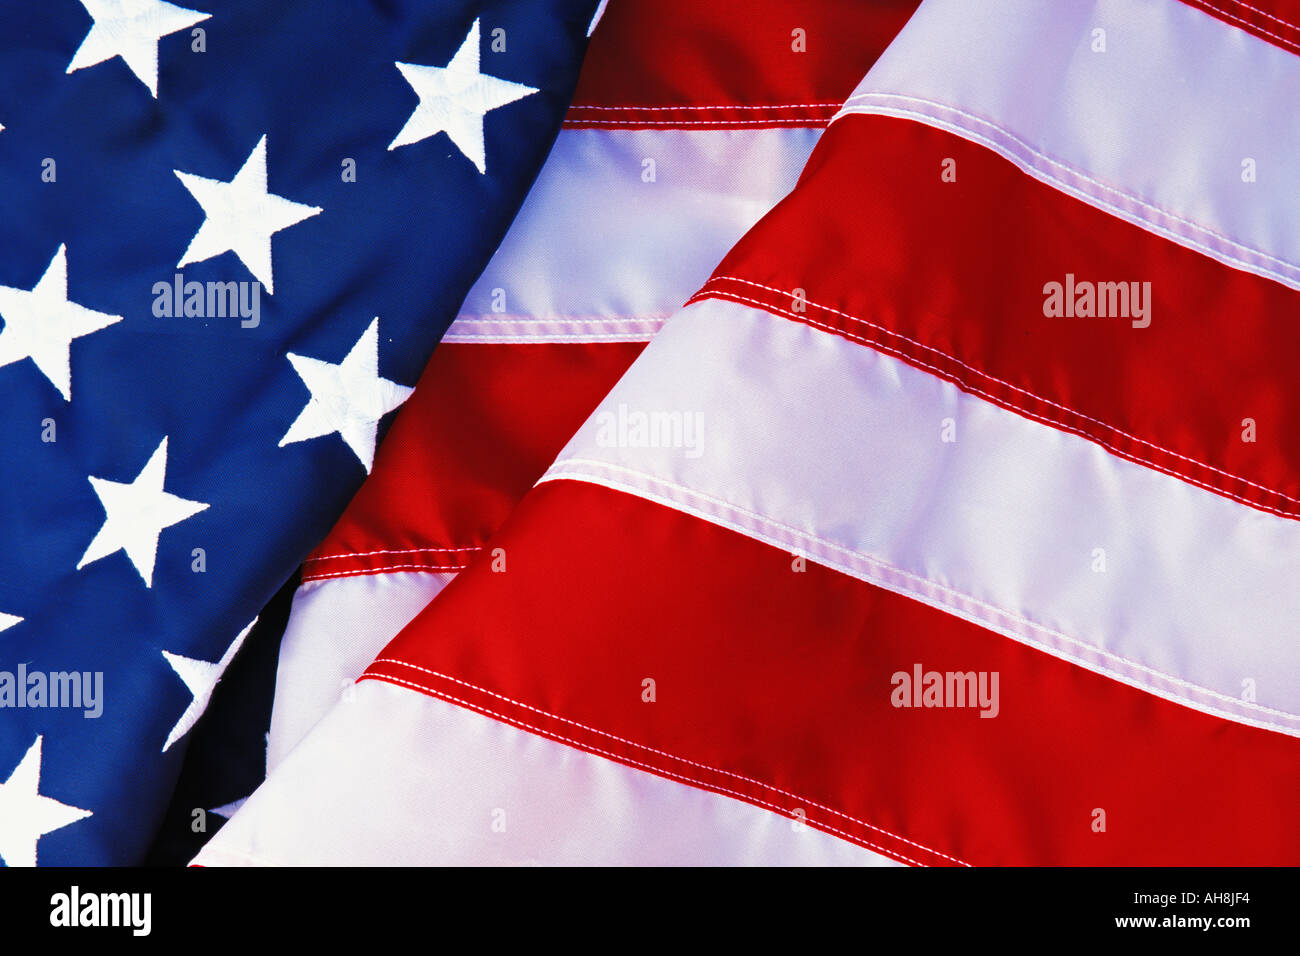 Flag of the United States of America. - Stock Image